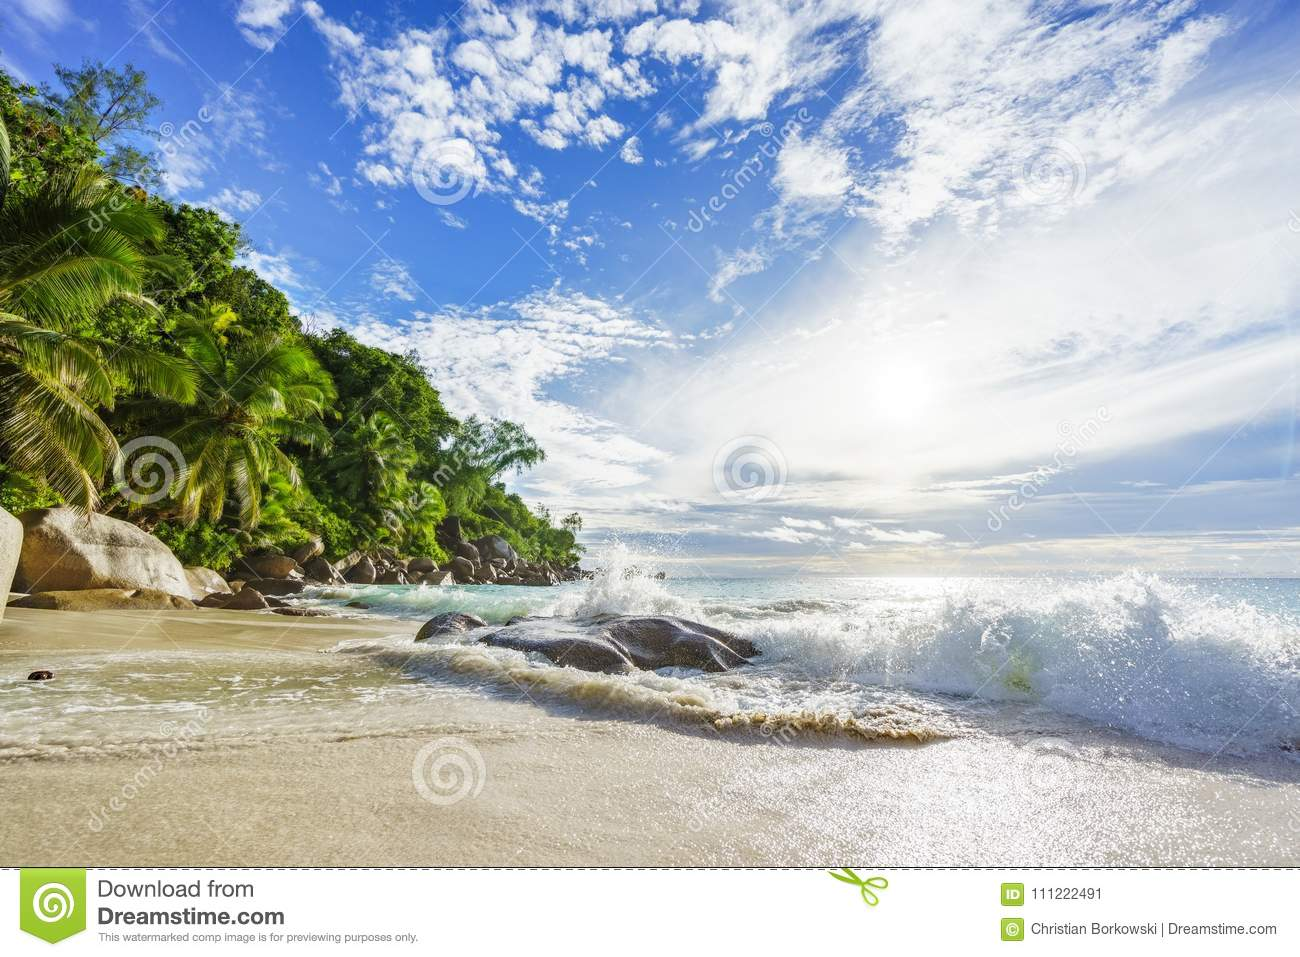 Paradise tropical beach with rocks,palm trees and turquoise water in sunshine, seychelles 23